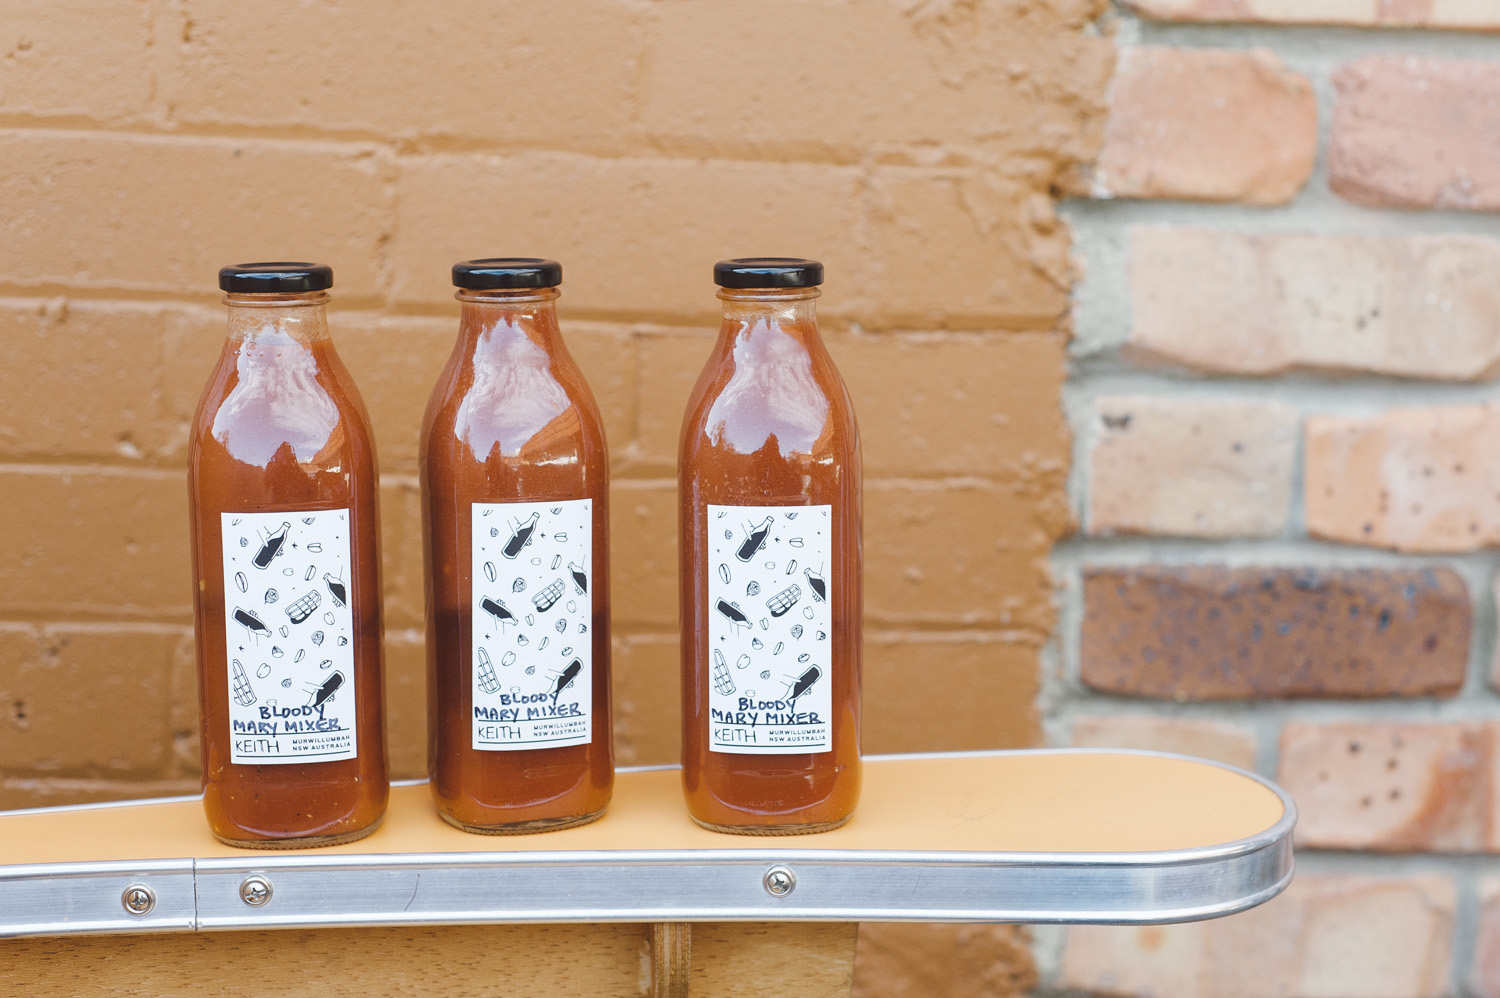 This brief started with a range of concept labels, beginning with bloody mary mixer bottles.